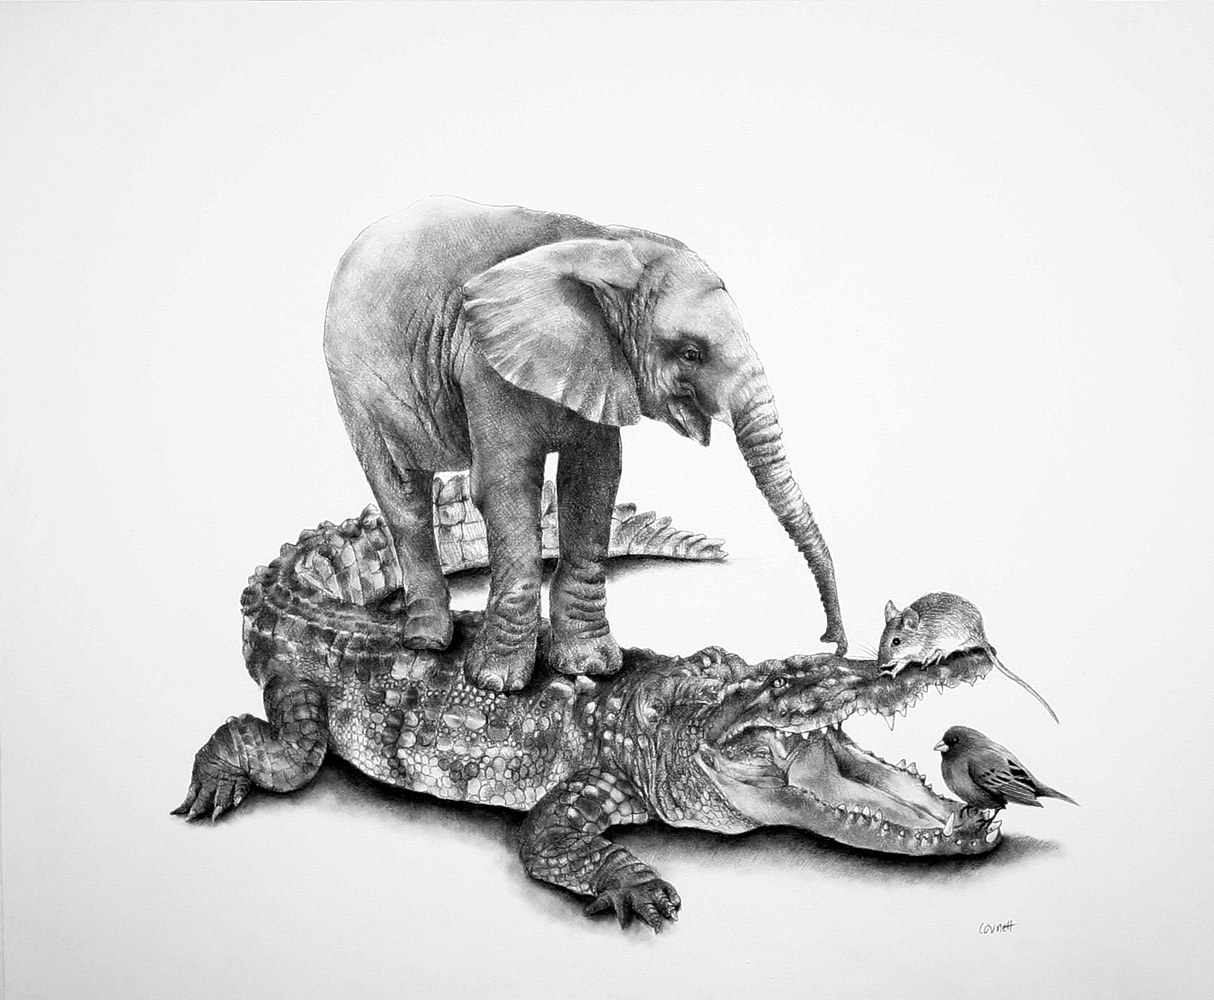 Drawing Teasing the Crocodile by Ellen Cornett